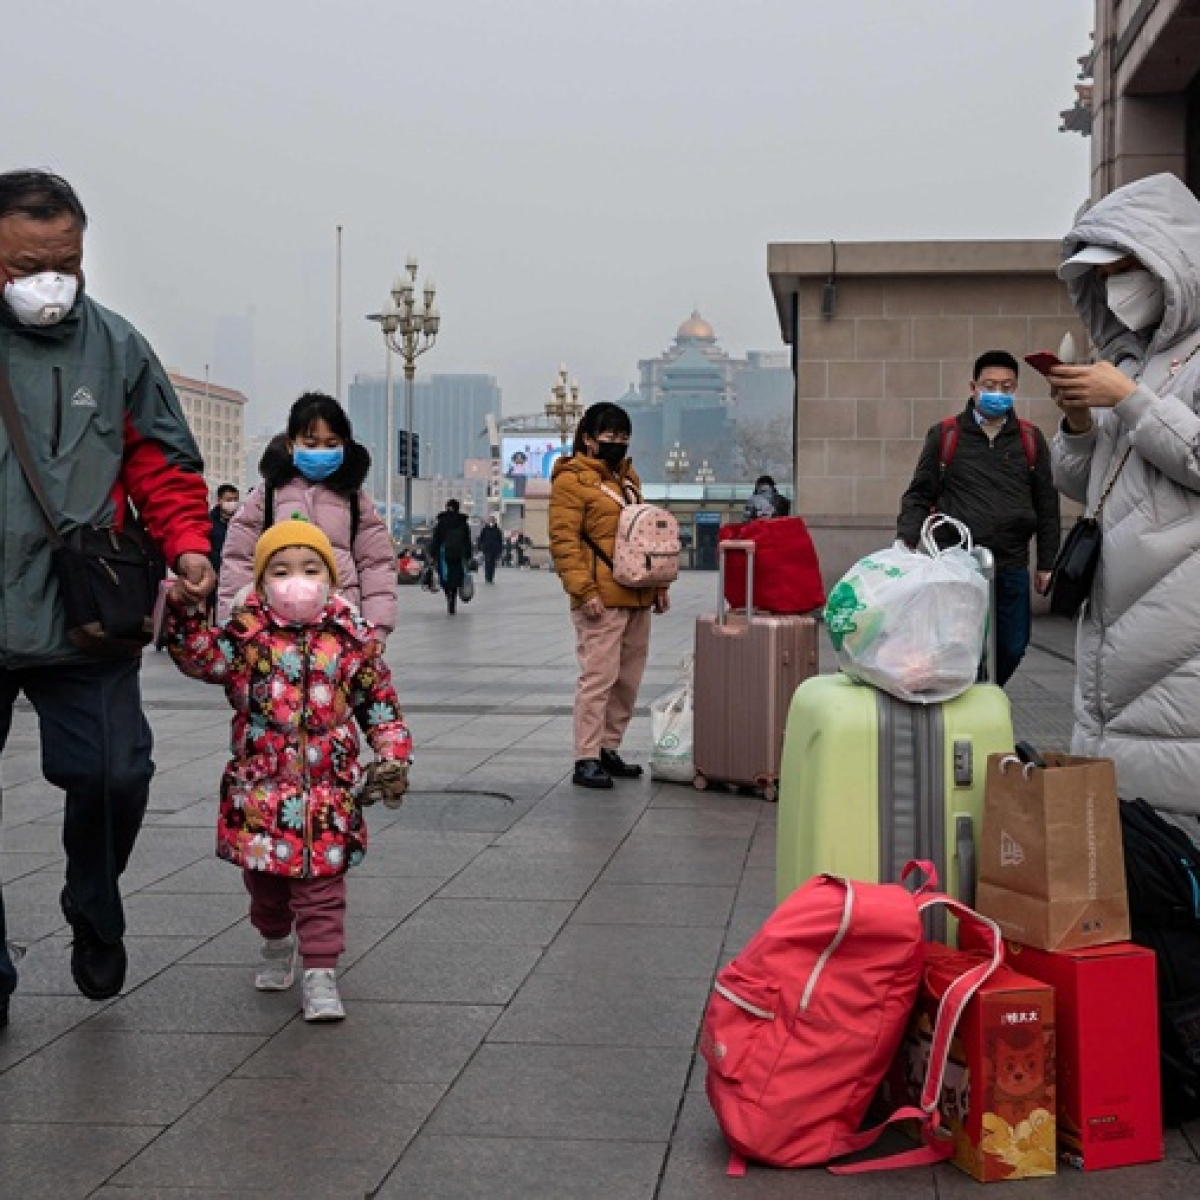 China's Coronavirus death toll rises to 106 with more than 4,000 confirmed cases